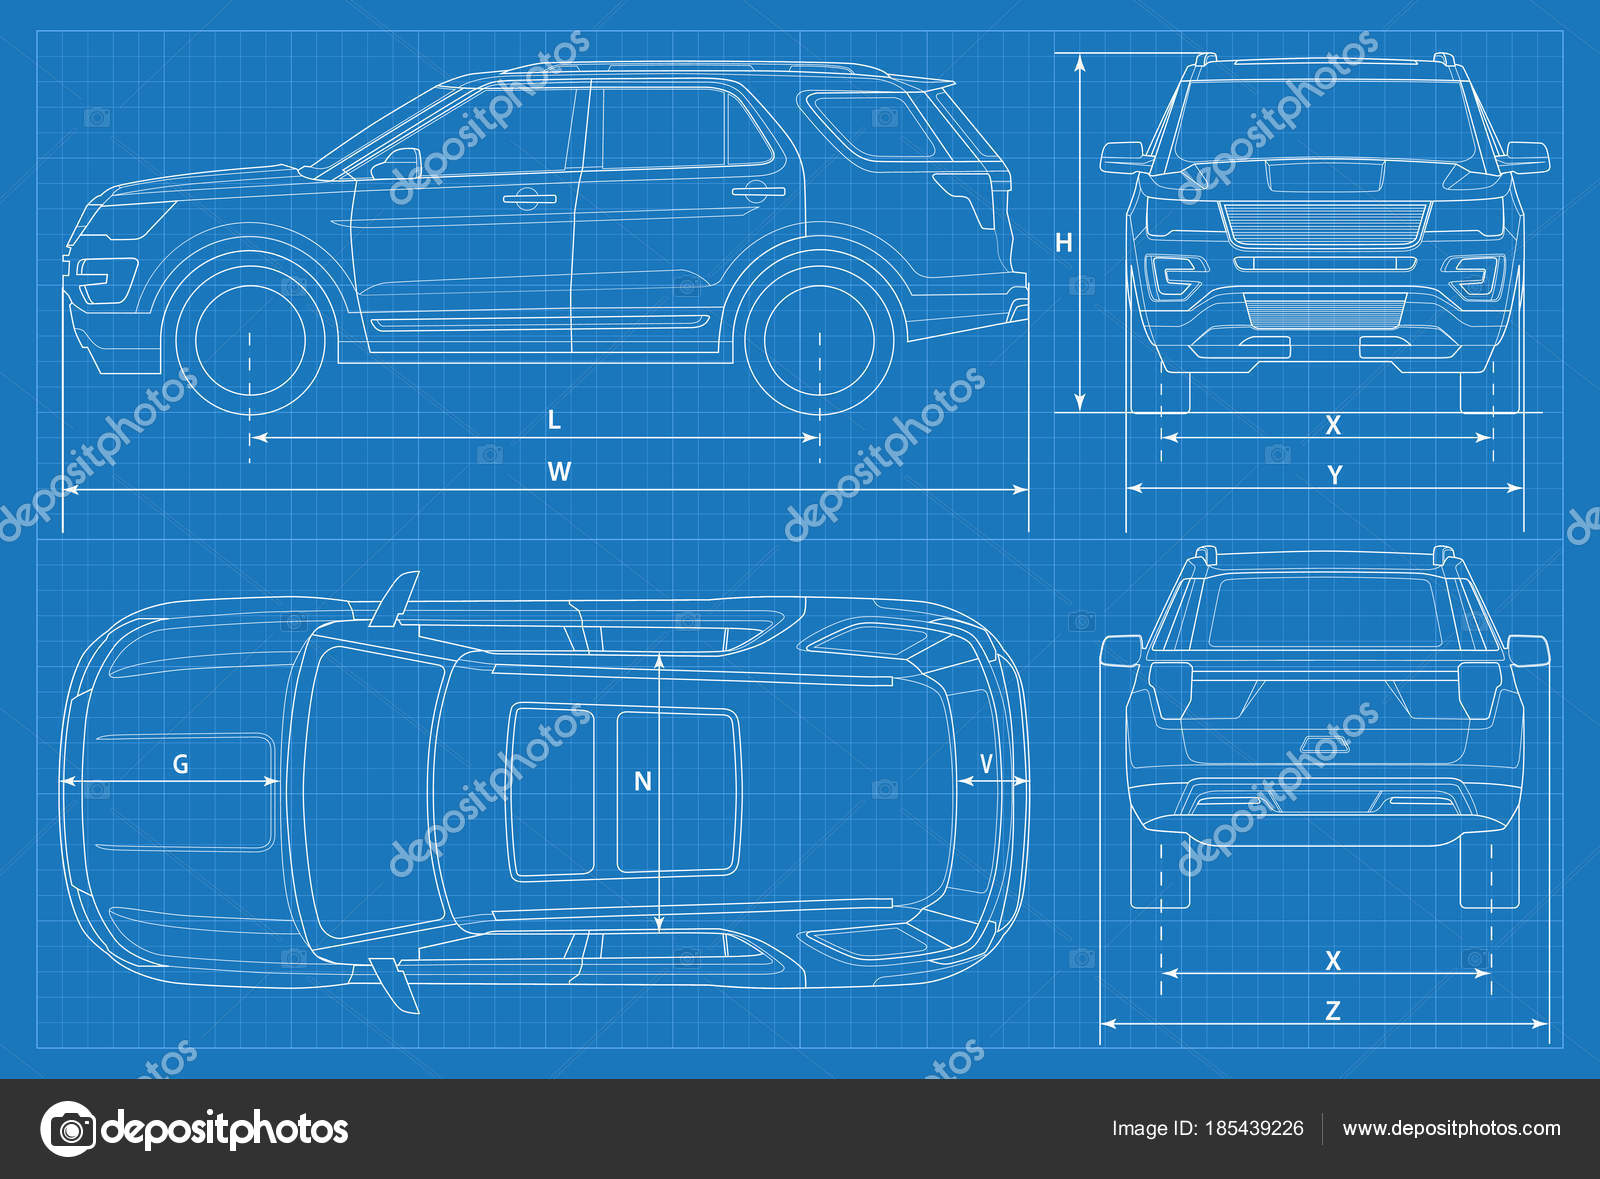 Off road car schematic or suv car blueprint vector illustration off road car schematic or suv car blueprint vector illustration off road car in outline business vehicle template vector view front rear side top malvernweather Gallery